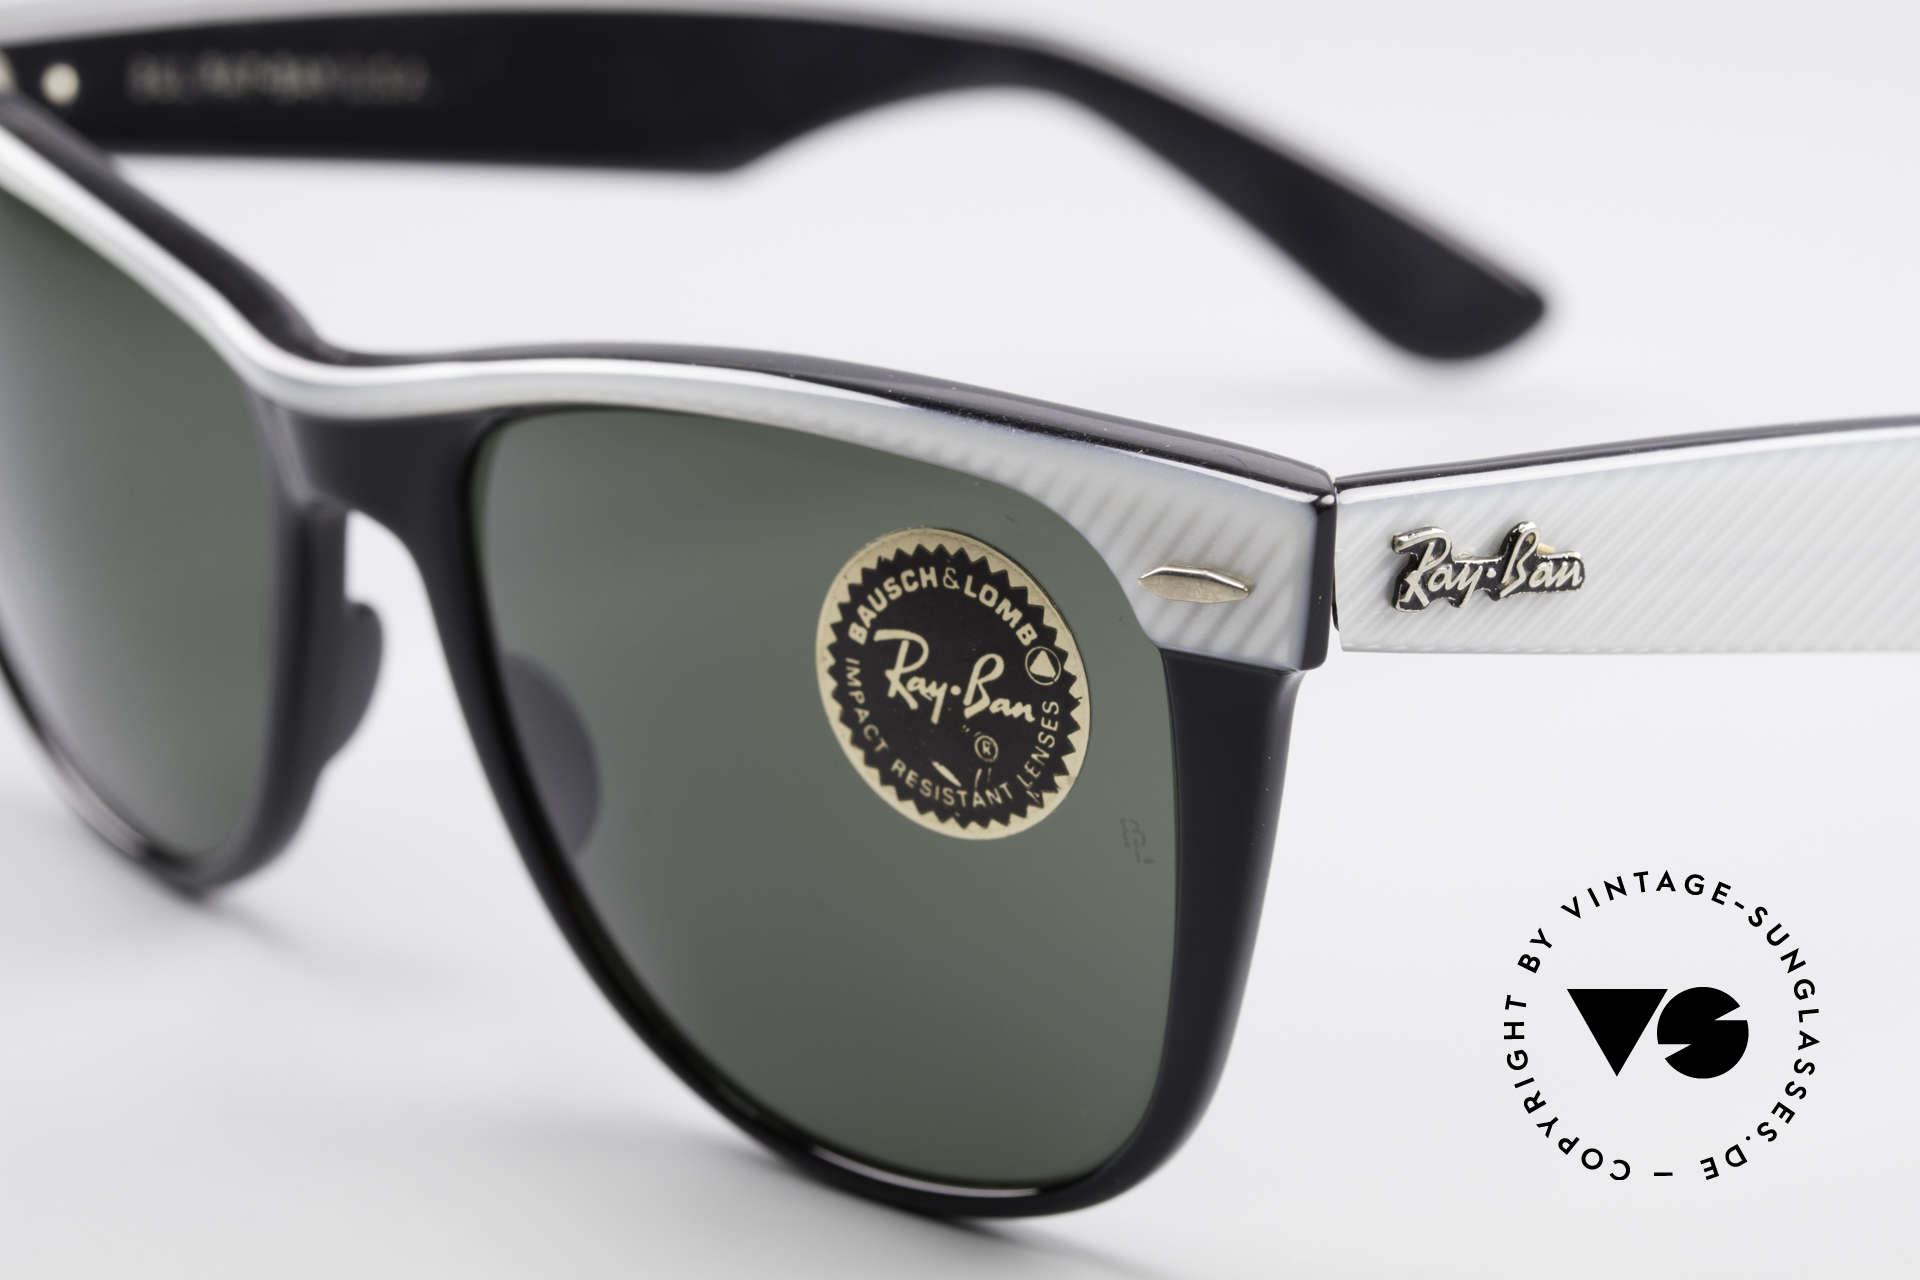 Ray Ban Wayfarer II B&L USA Original Wayfarer, never worn (like all our old B&L RAY-BAN shades), Made for Men and Women